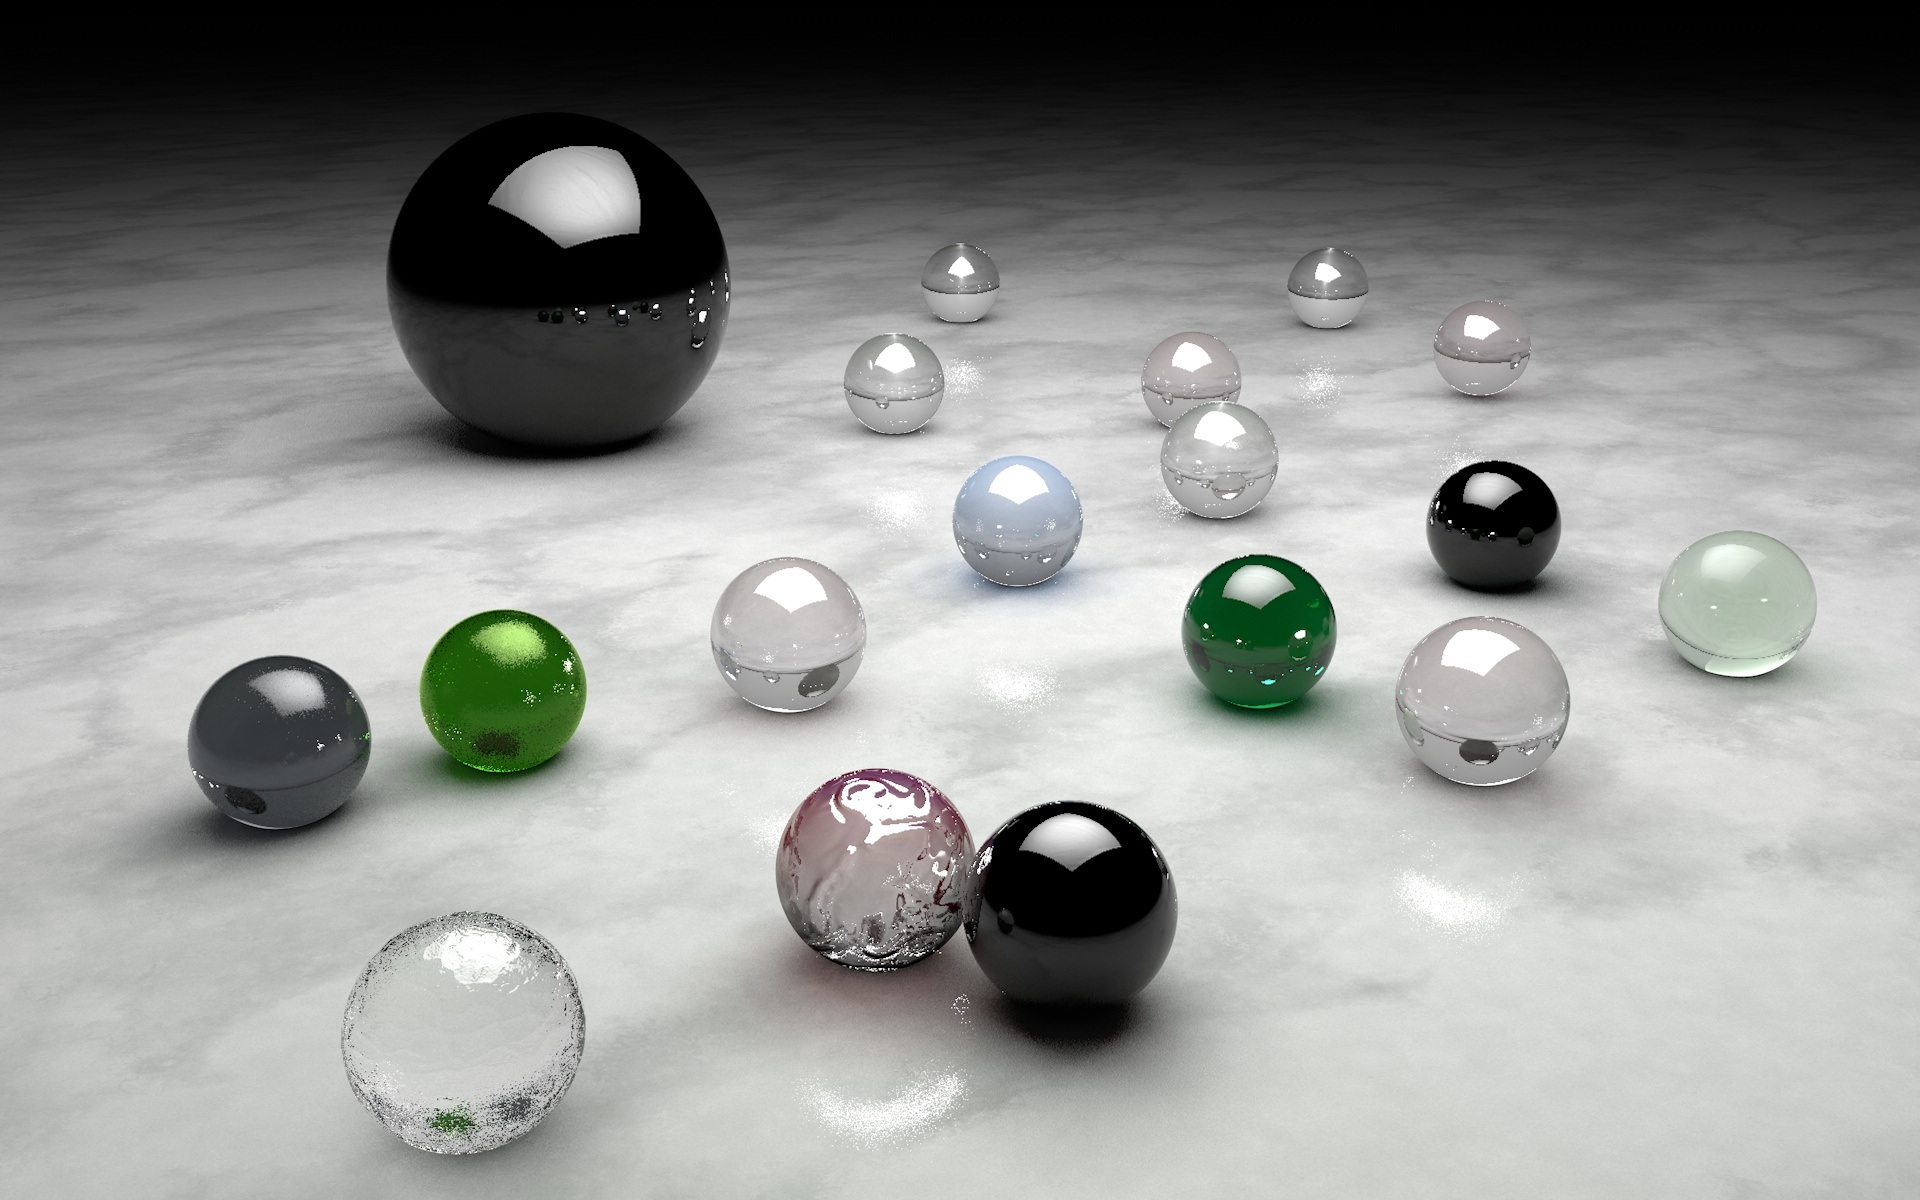 Marbles Wallpaper, 3drender, Abstract, Backgrounds, Ball, HQ Photo